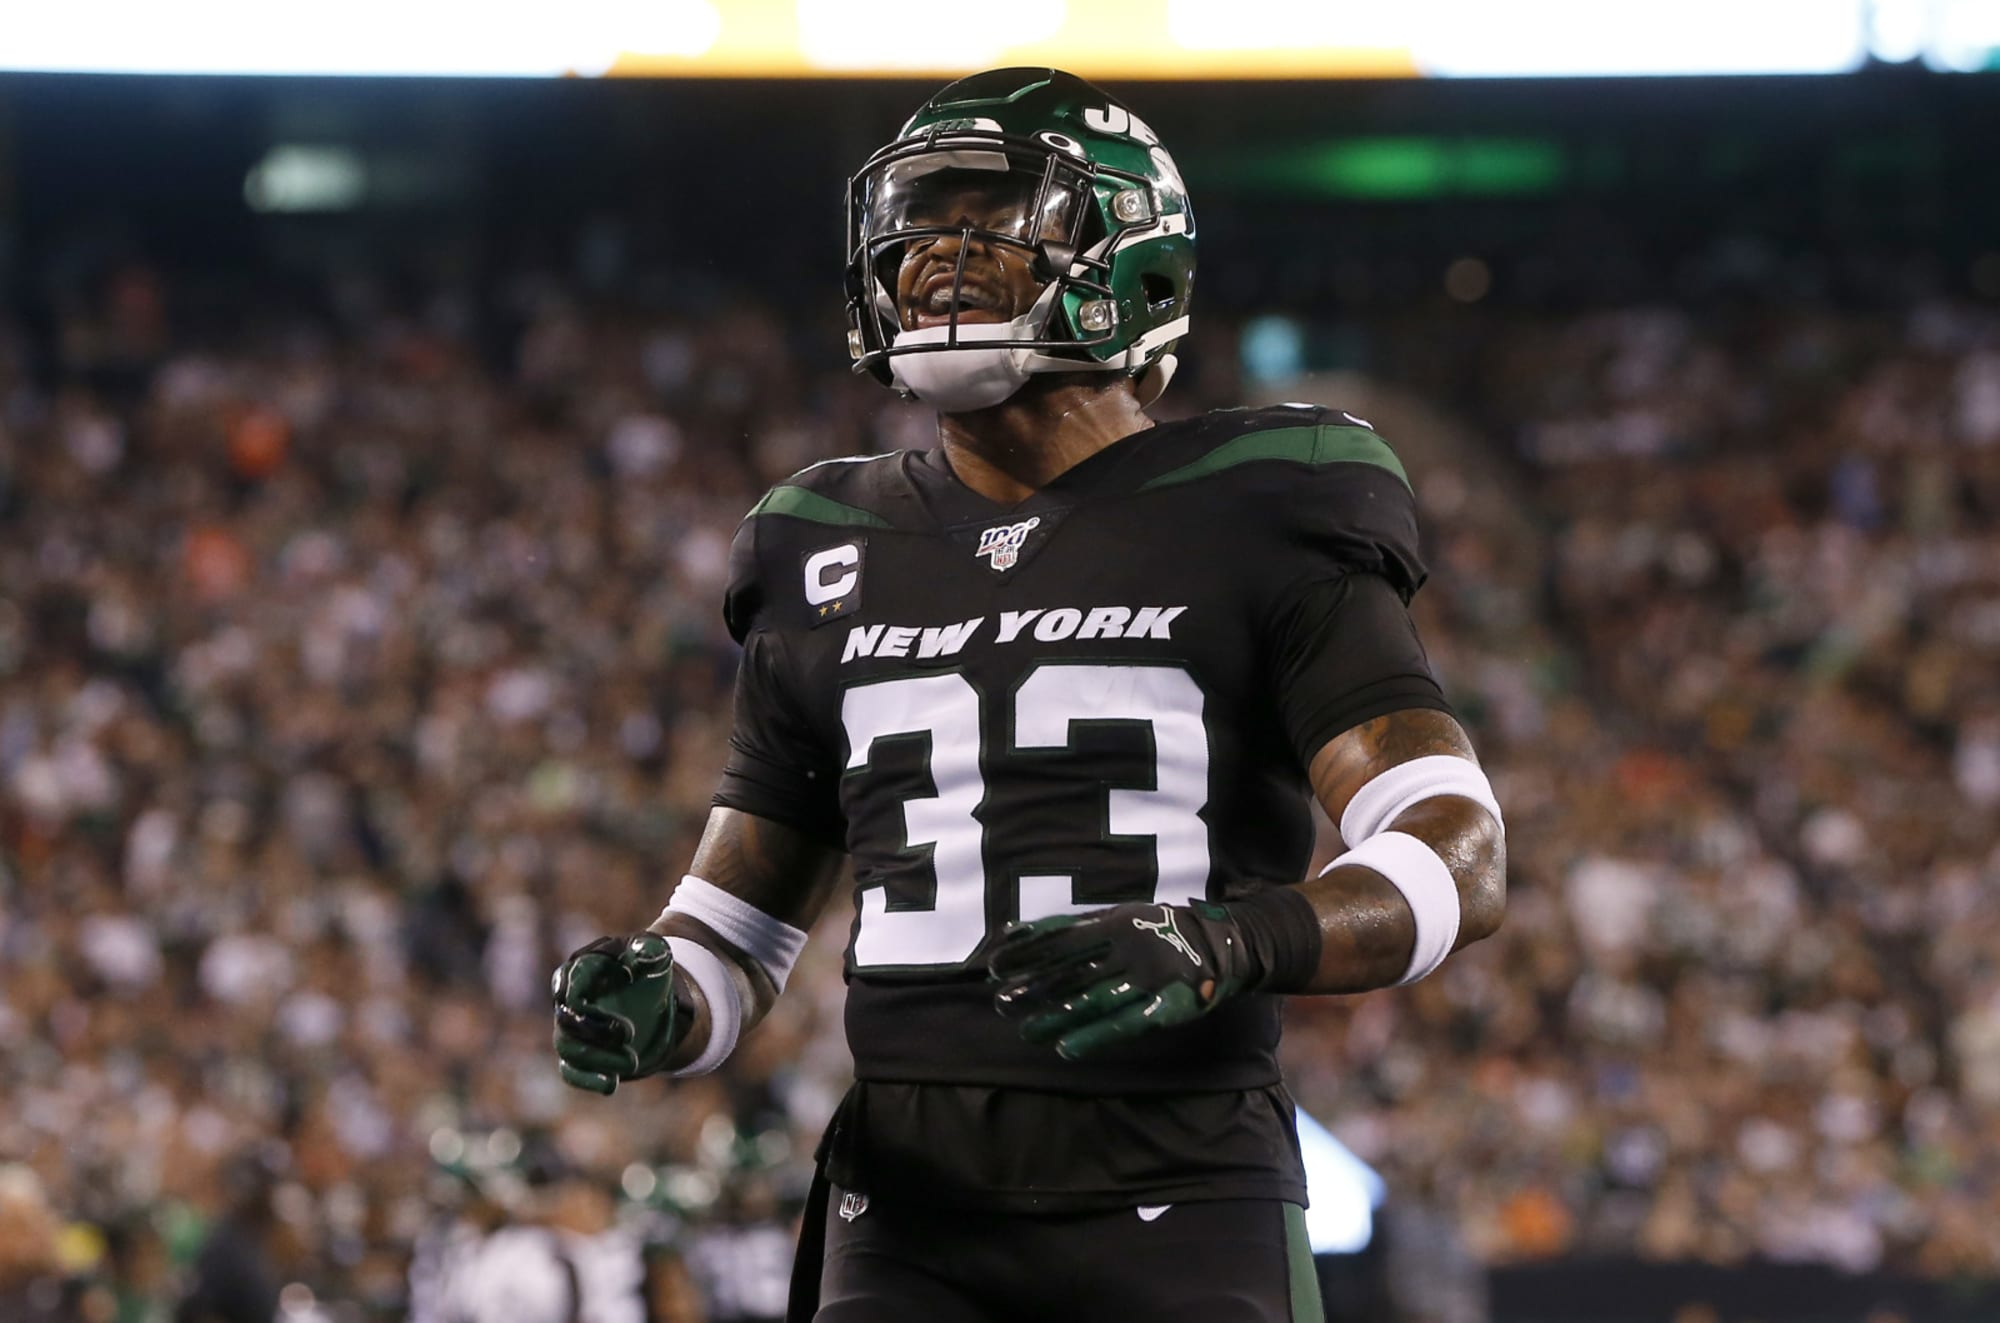 NY Jets: Albert Breer is 'skeptical' Jamal Adams will be traded